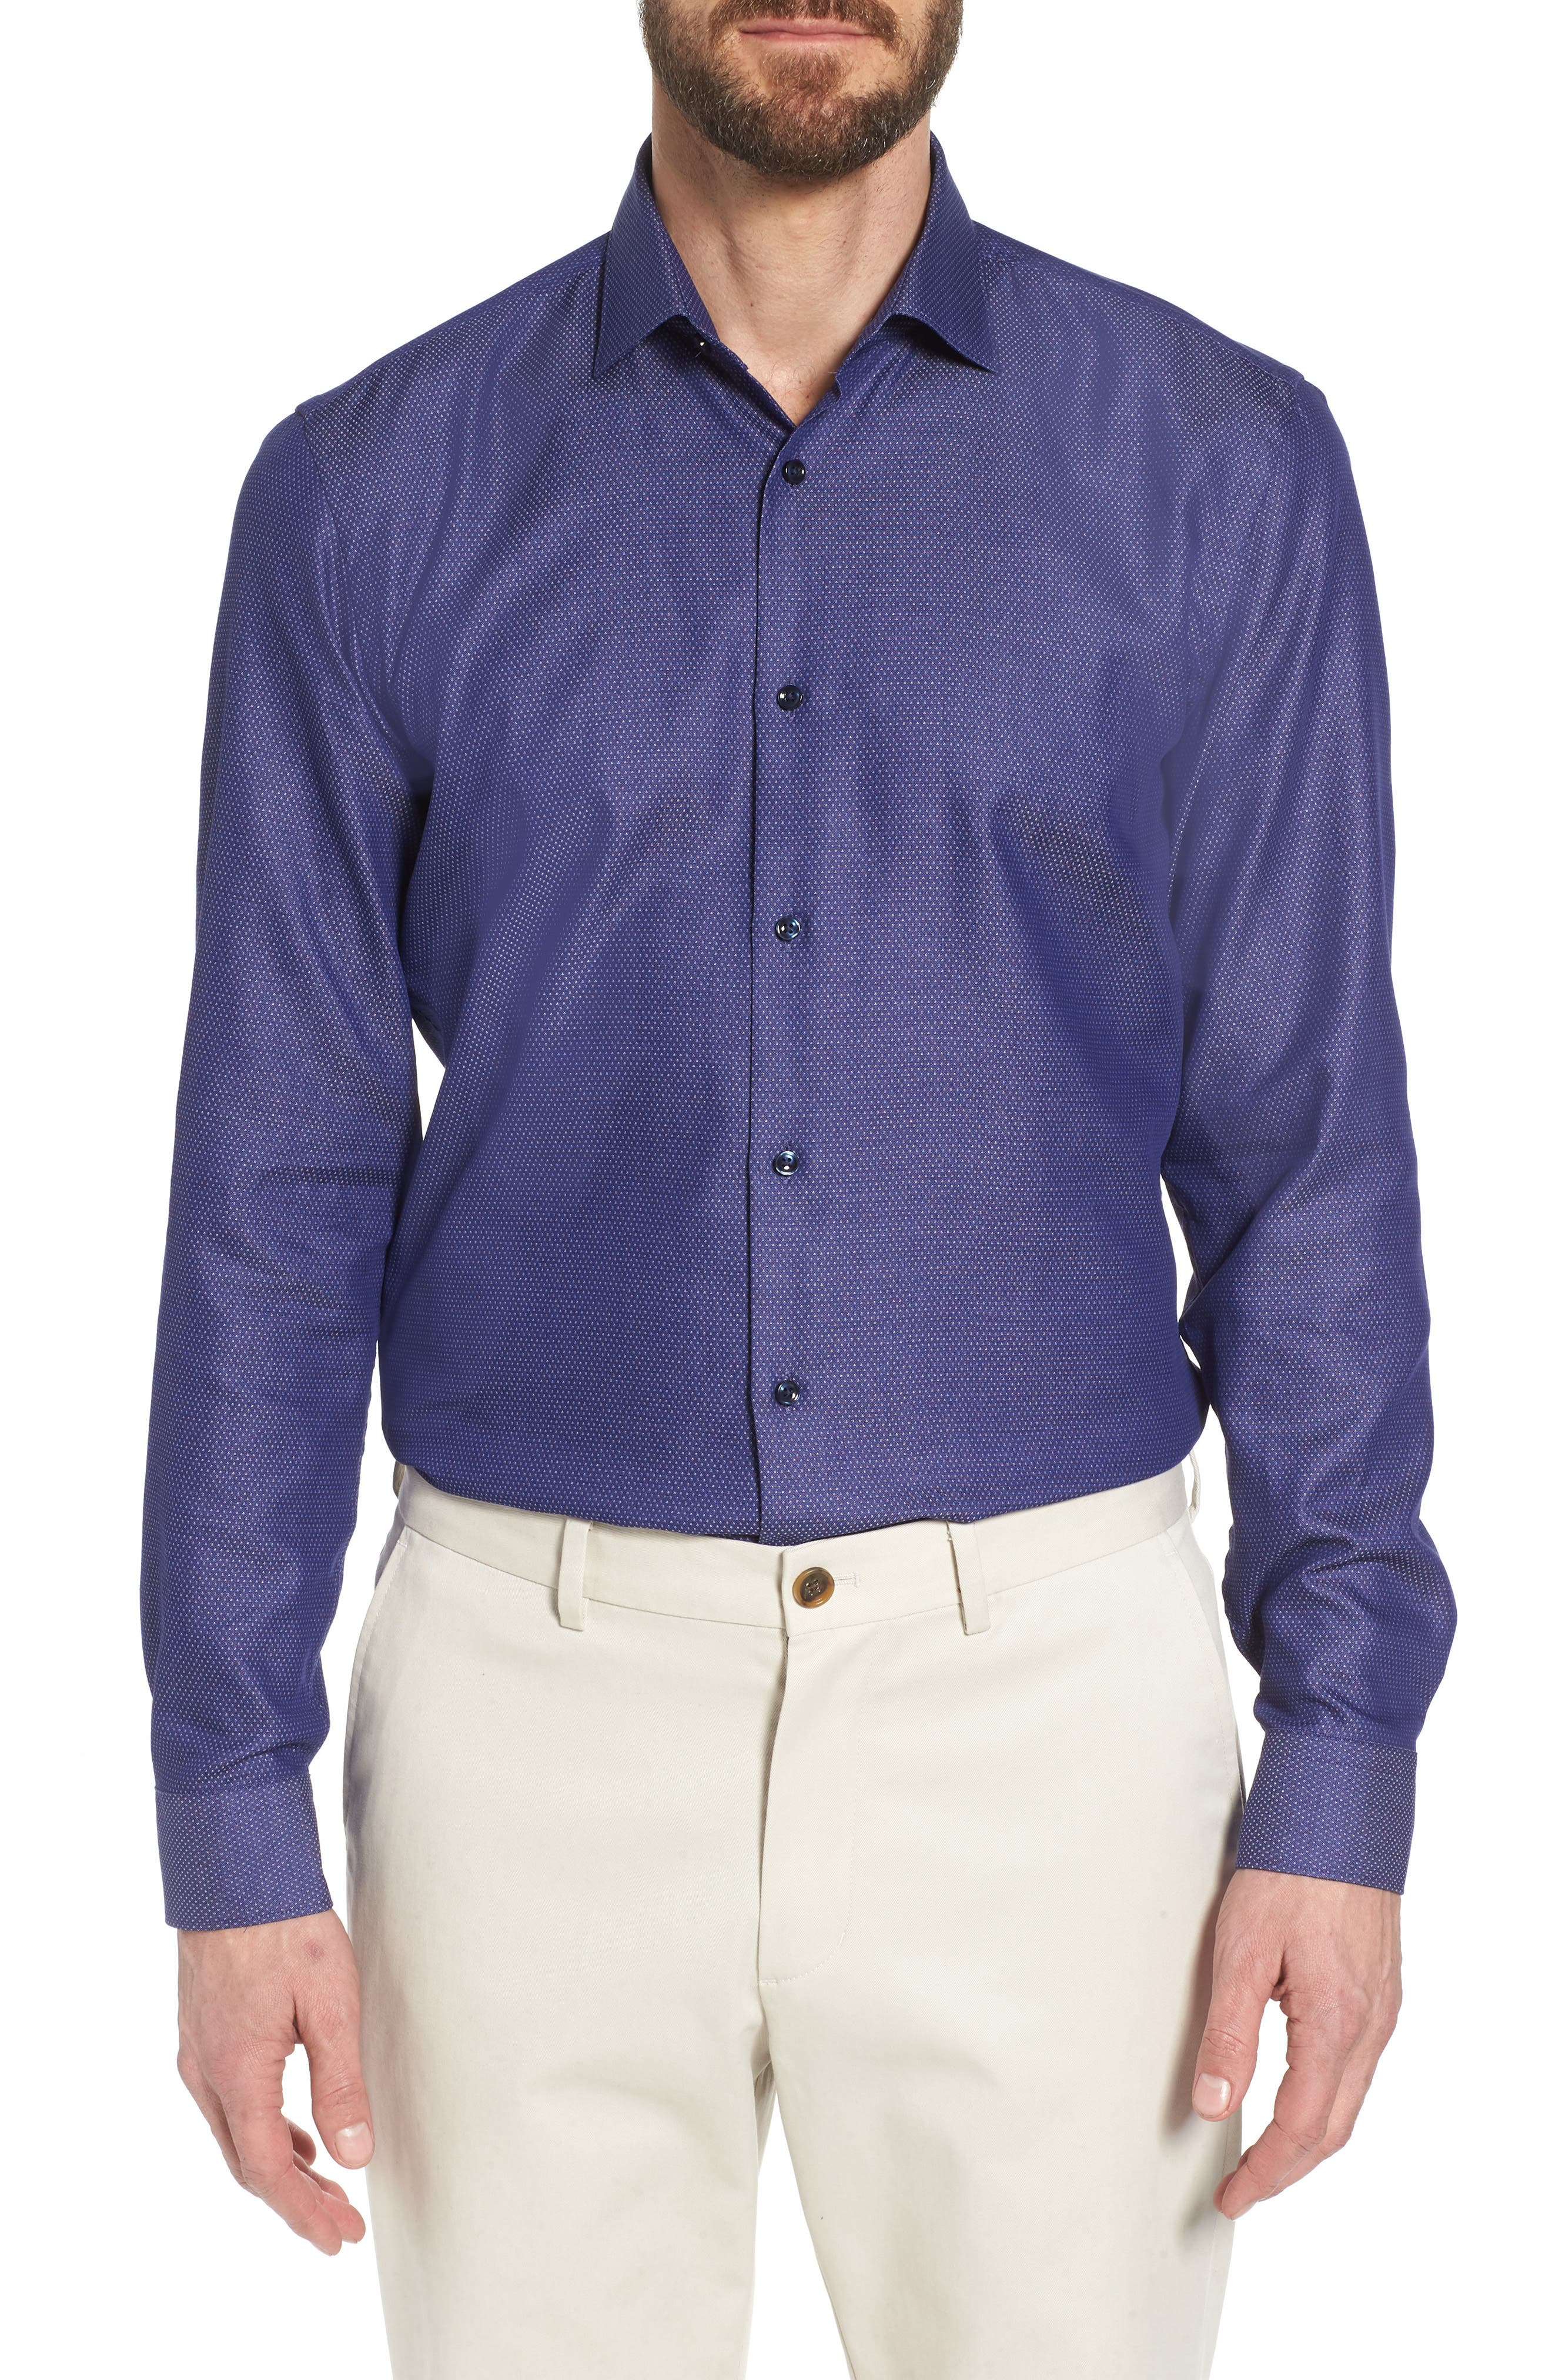 Ismo Slim Fit Solid Dress Shirt,                         Main,                         color, Navy